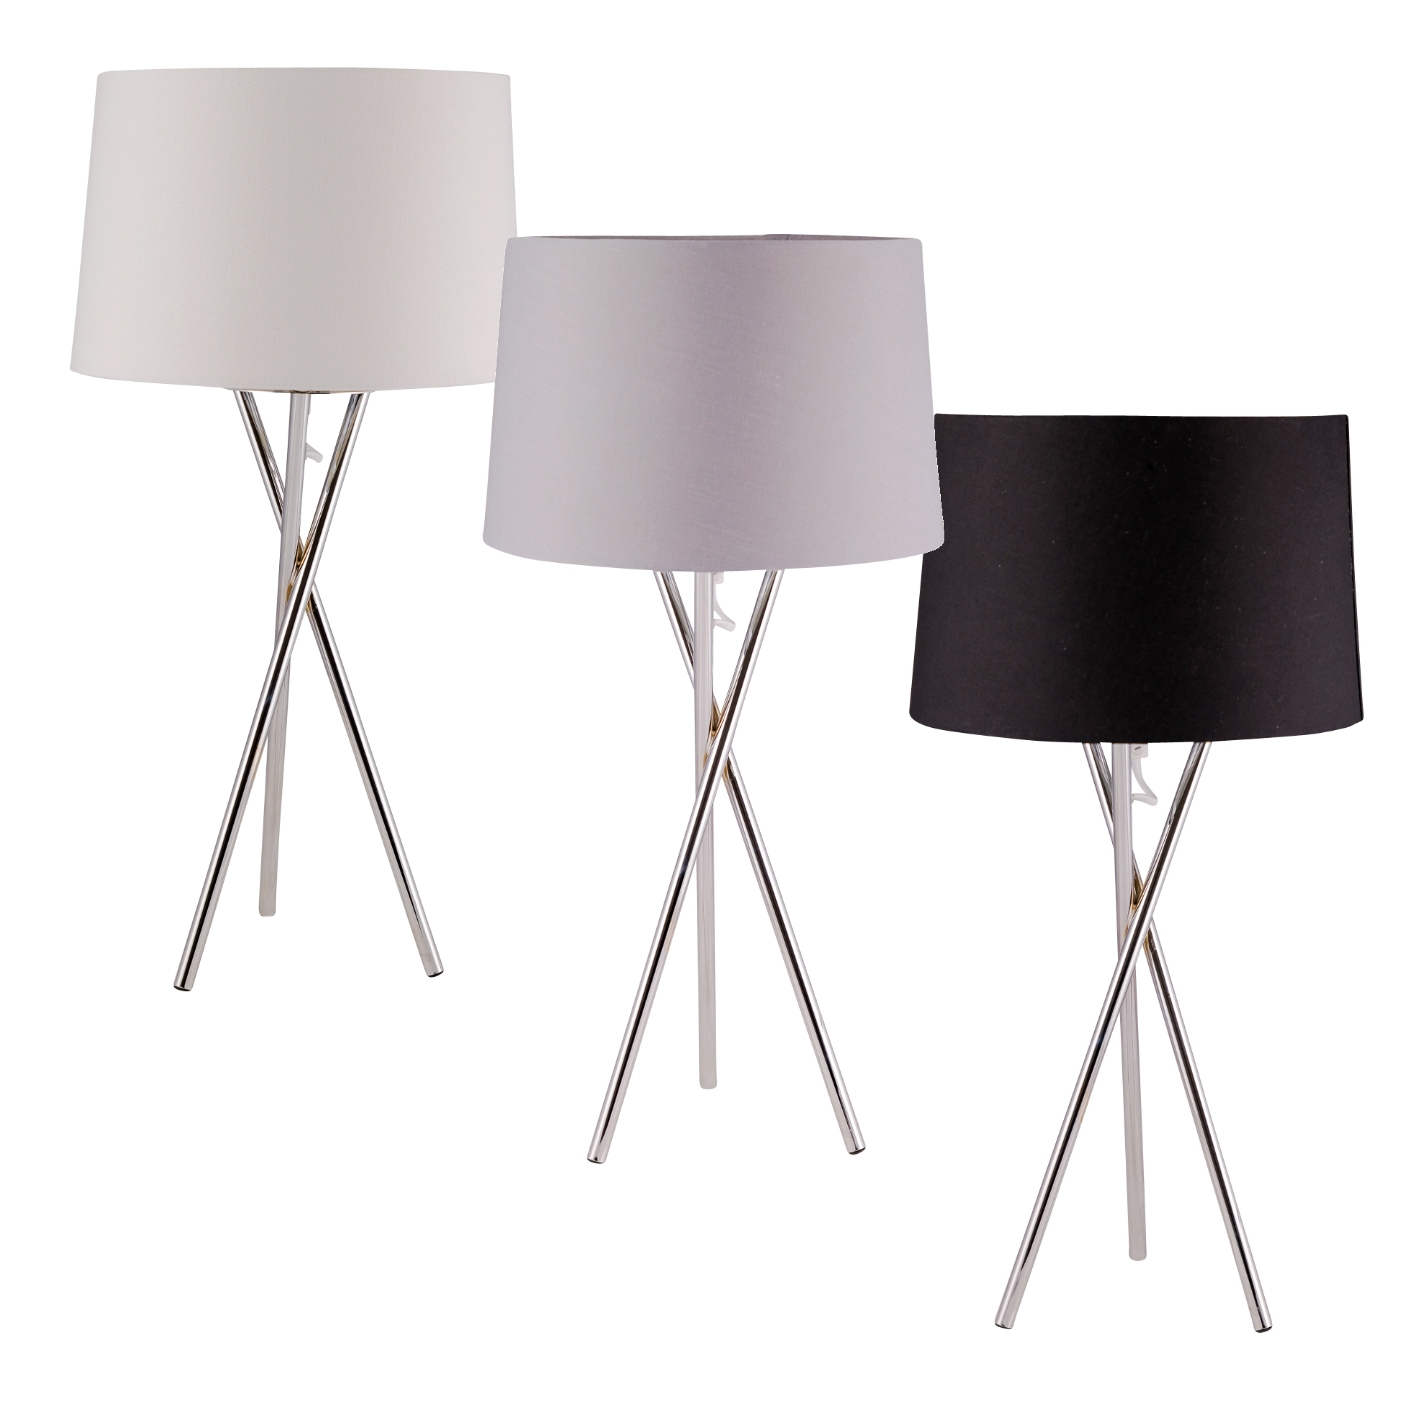 Modern Chrome Tripod Table Lamp Bedside Light With Grey